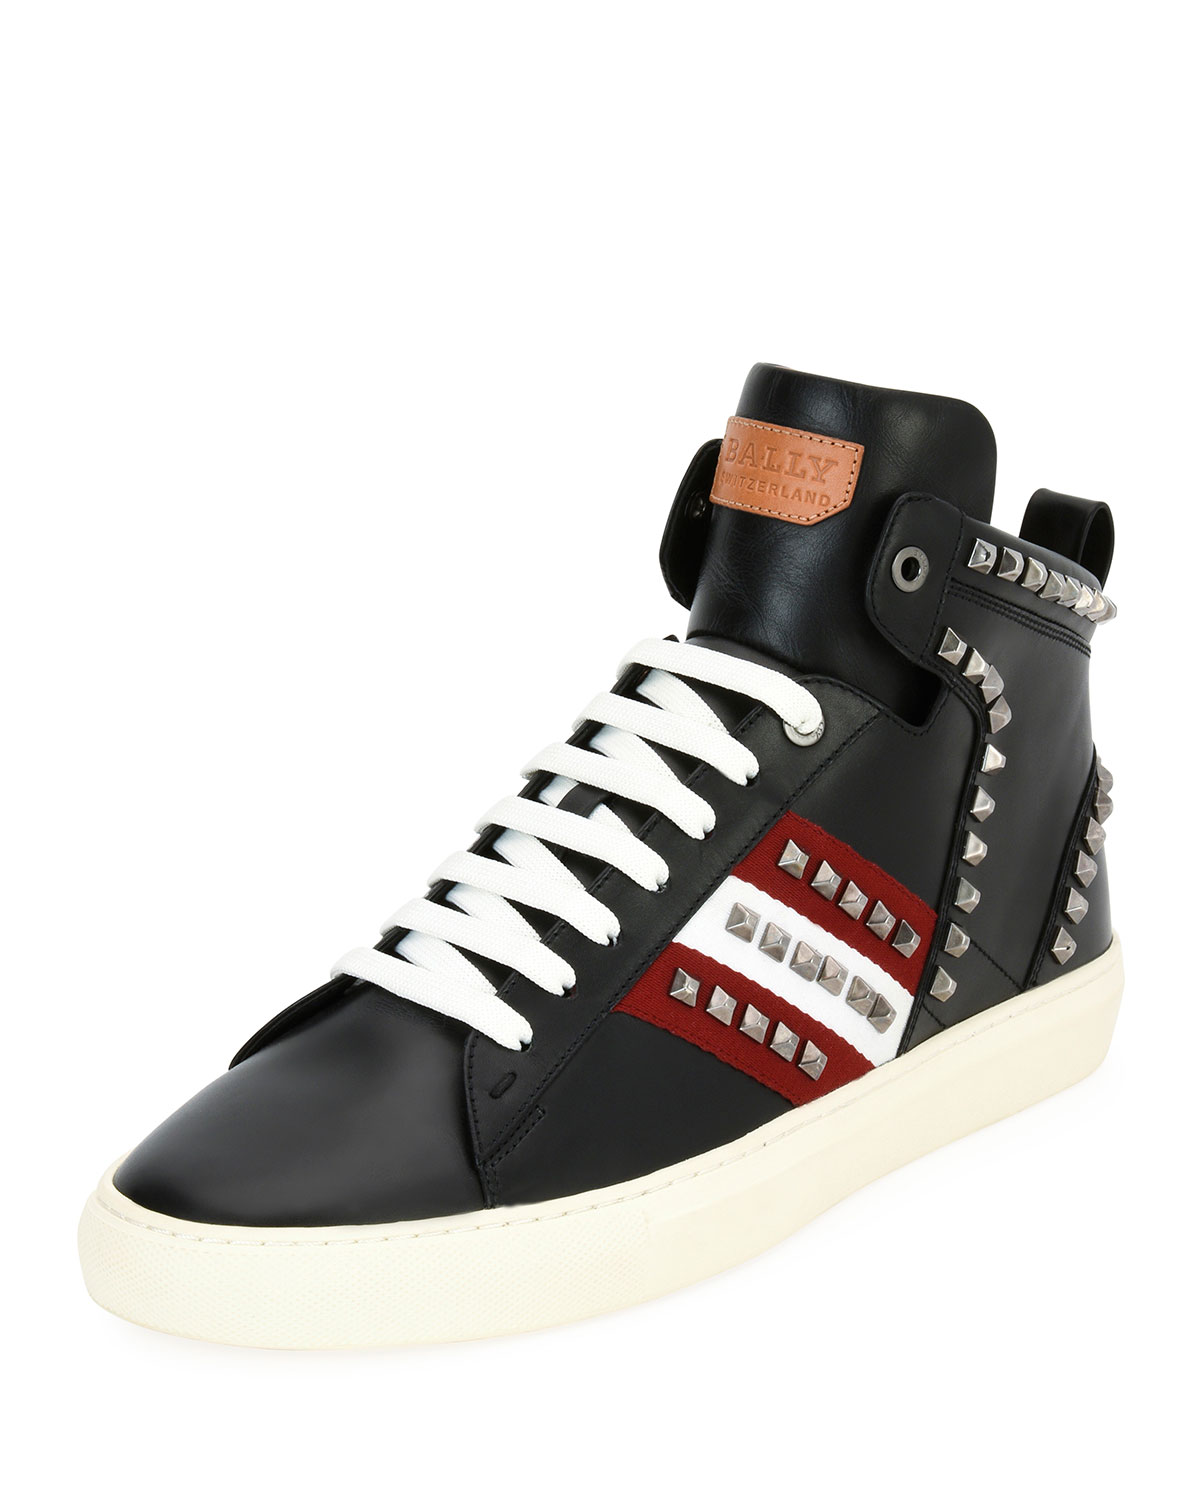 Bally Men's Hedern Studded Leather High